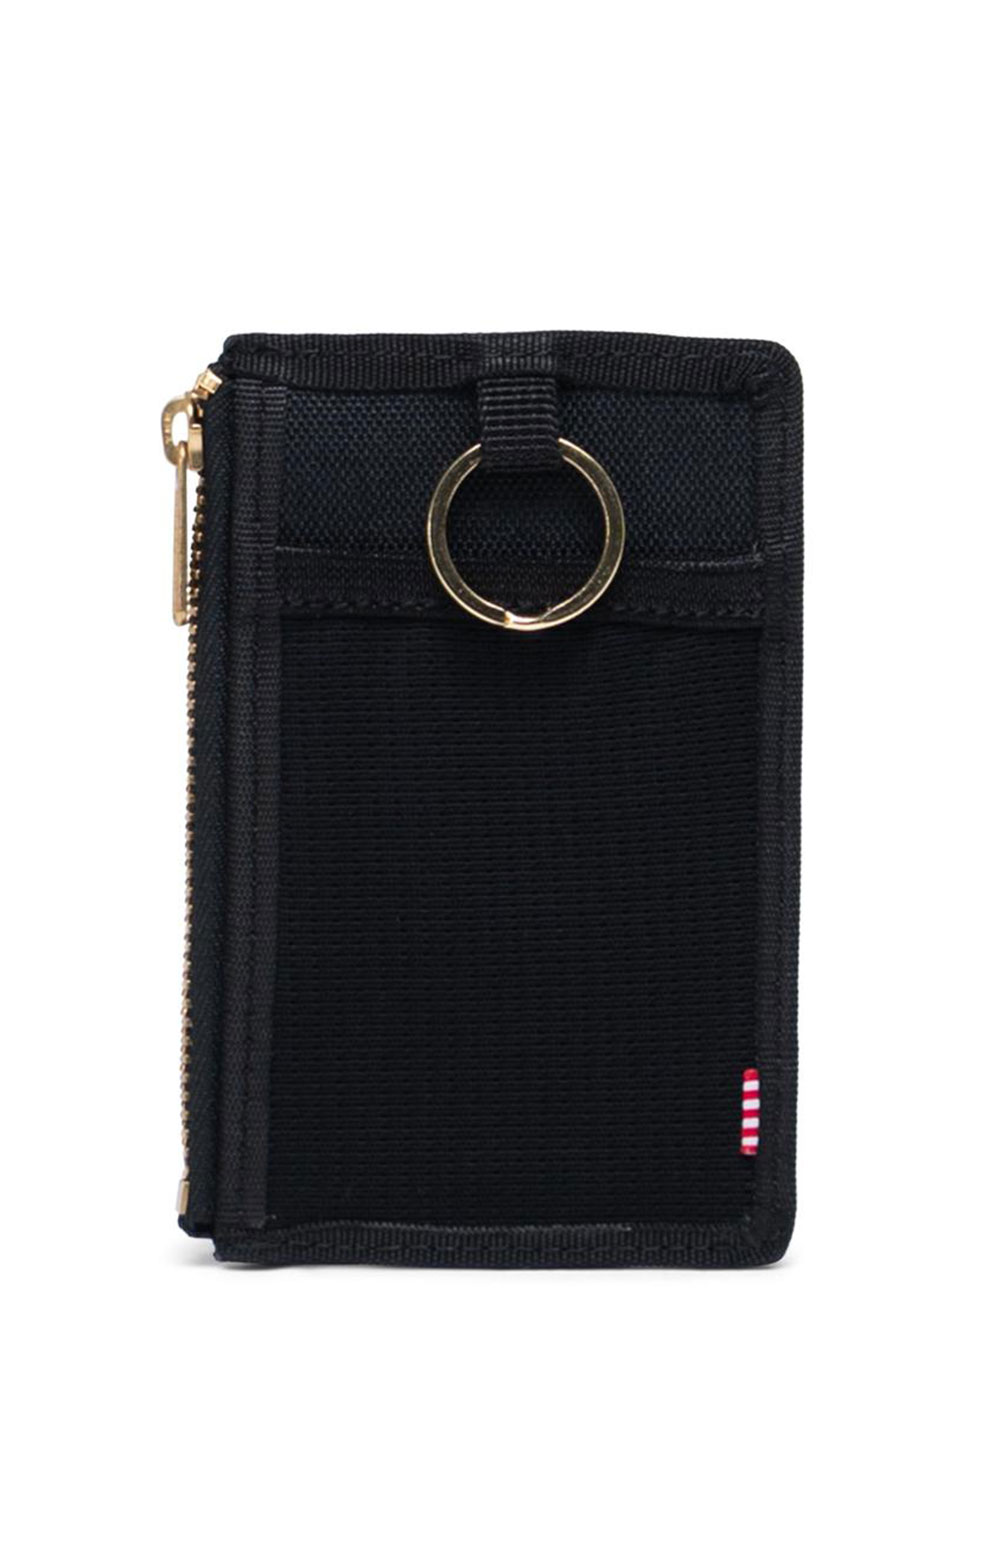 Oscar Wallet Key - Black  3